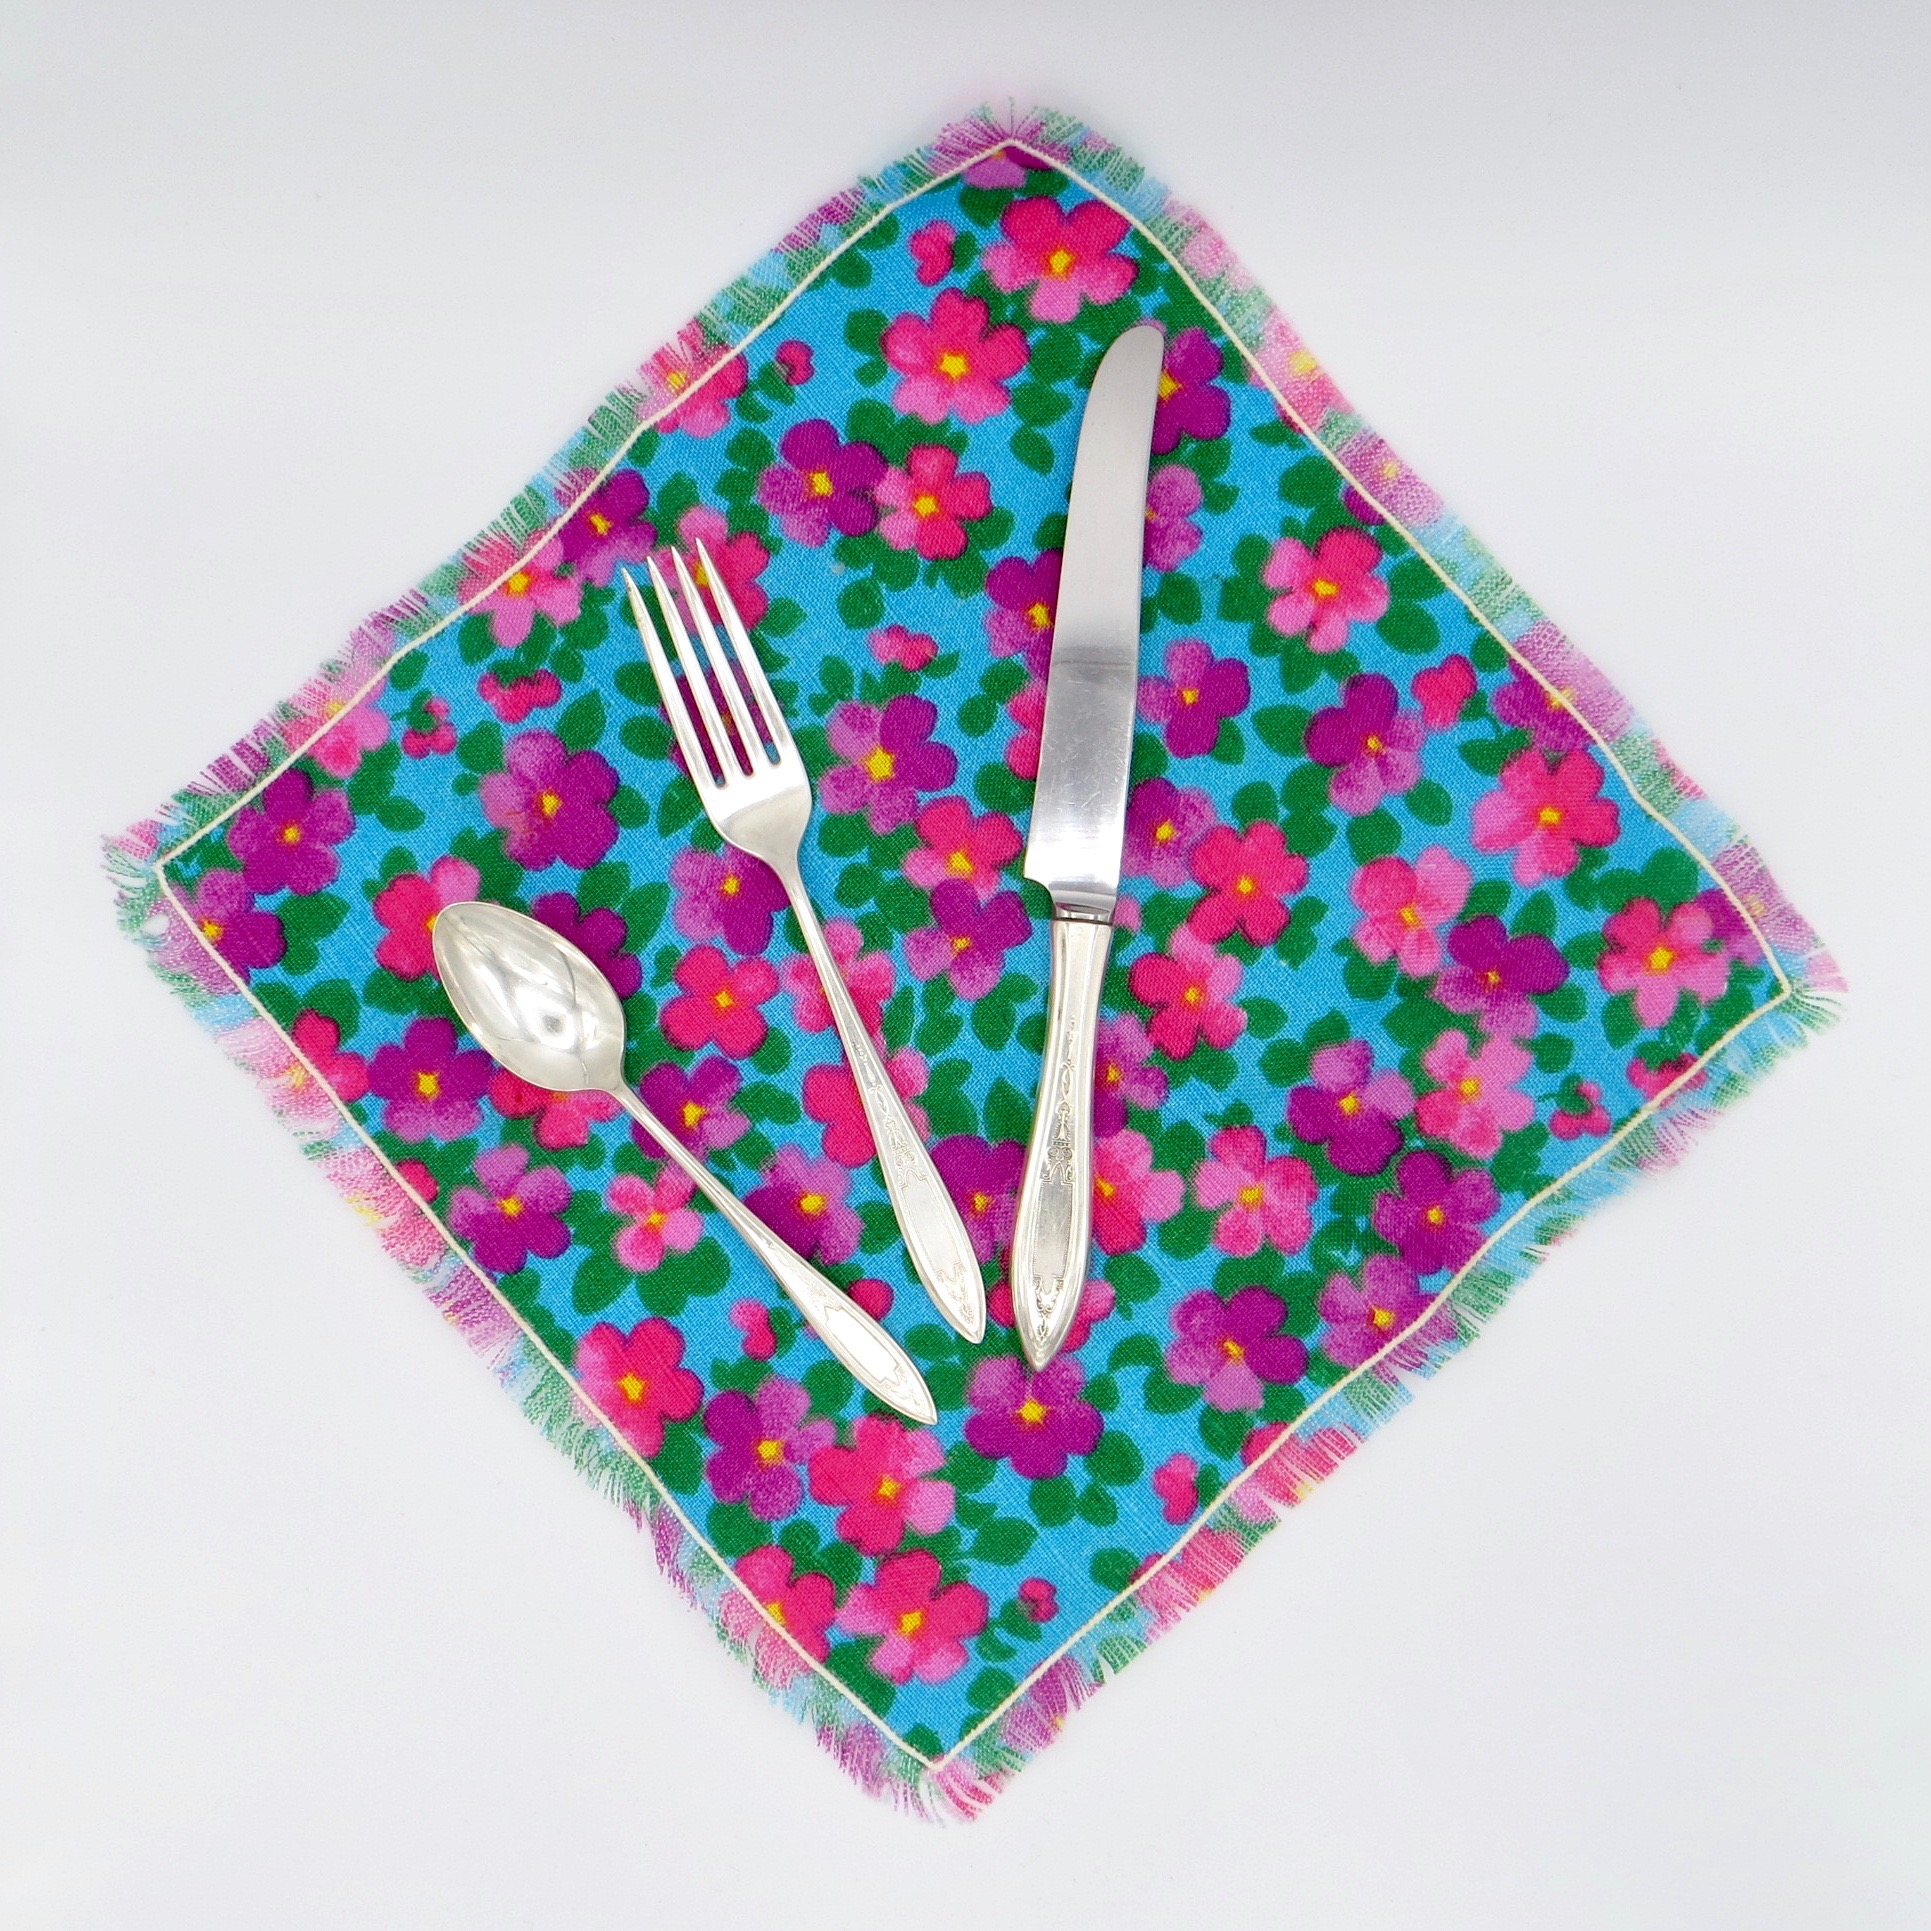 Silverware To Go - Patterned Napkins